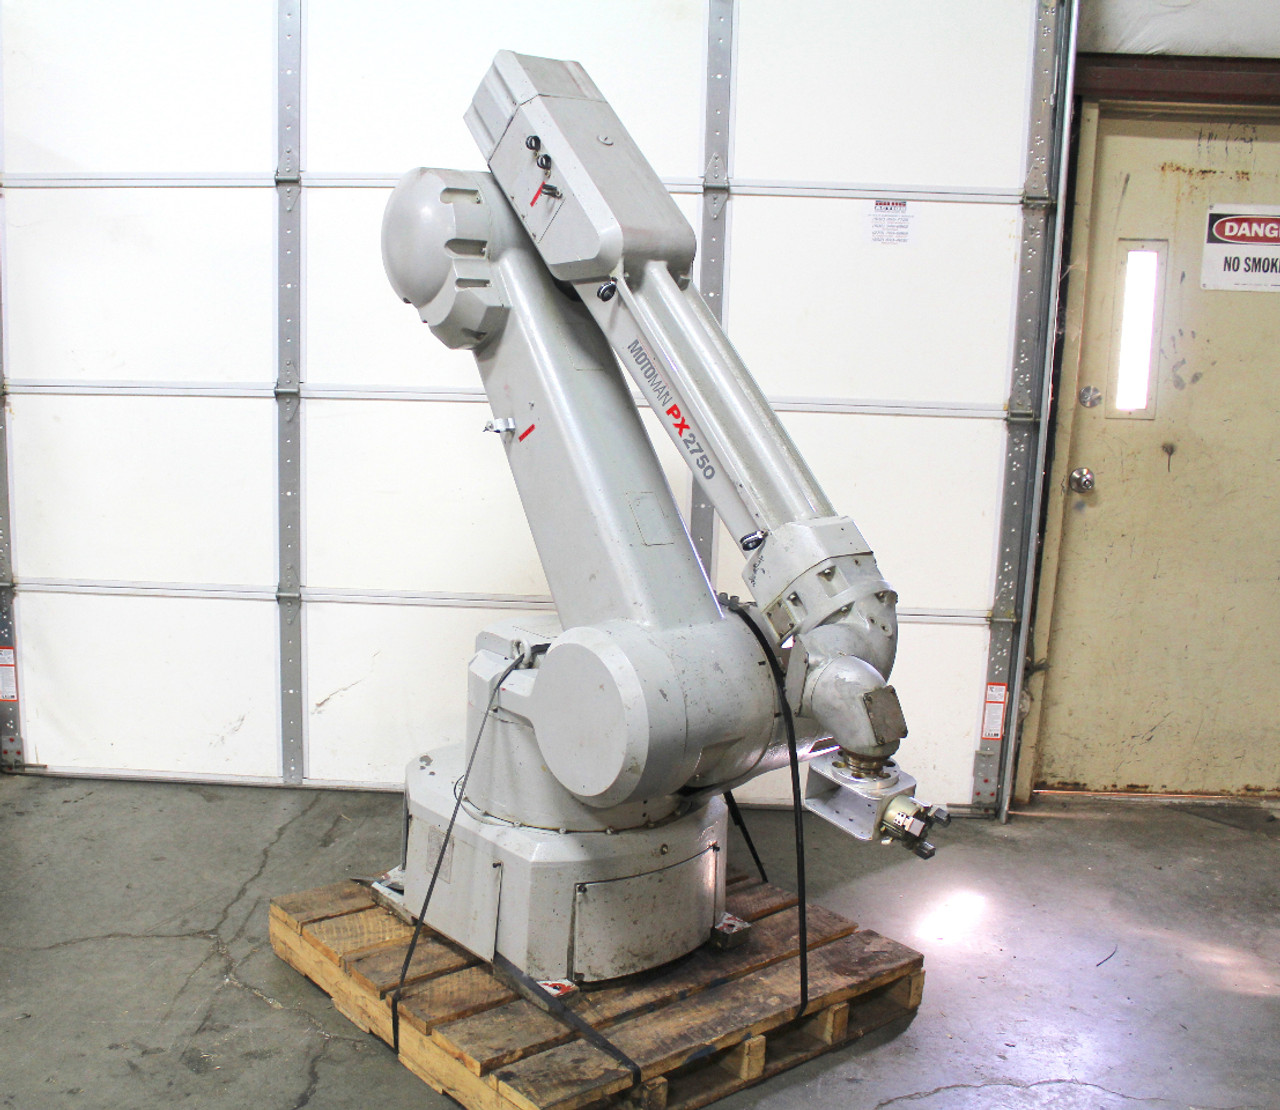 Motoman PX2750 Painting Robot 6 Axis 10Kg Payload 2729mm Reach